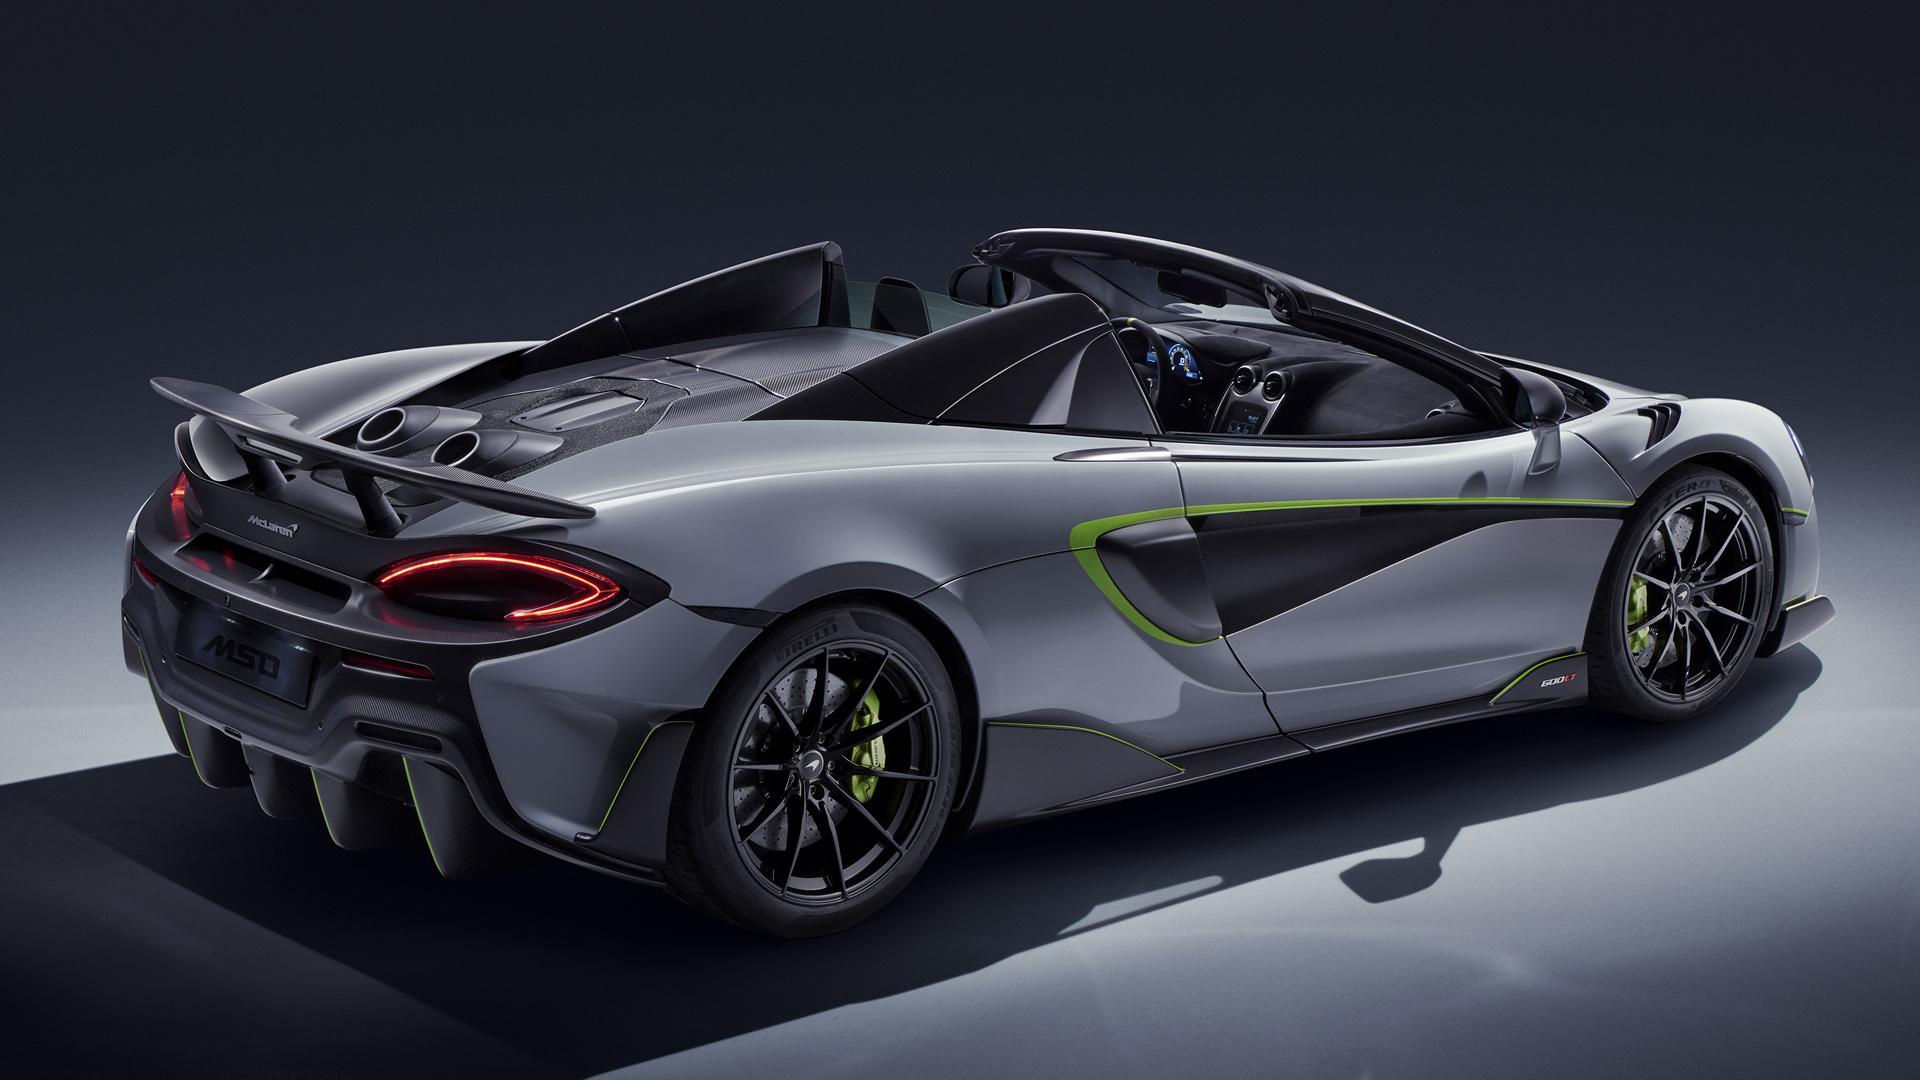 2019 McLaren 600LT Spider by MSO - Wallpapers and HD Images | Car Pixel